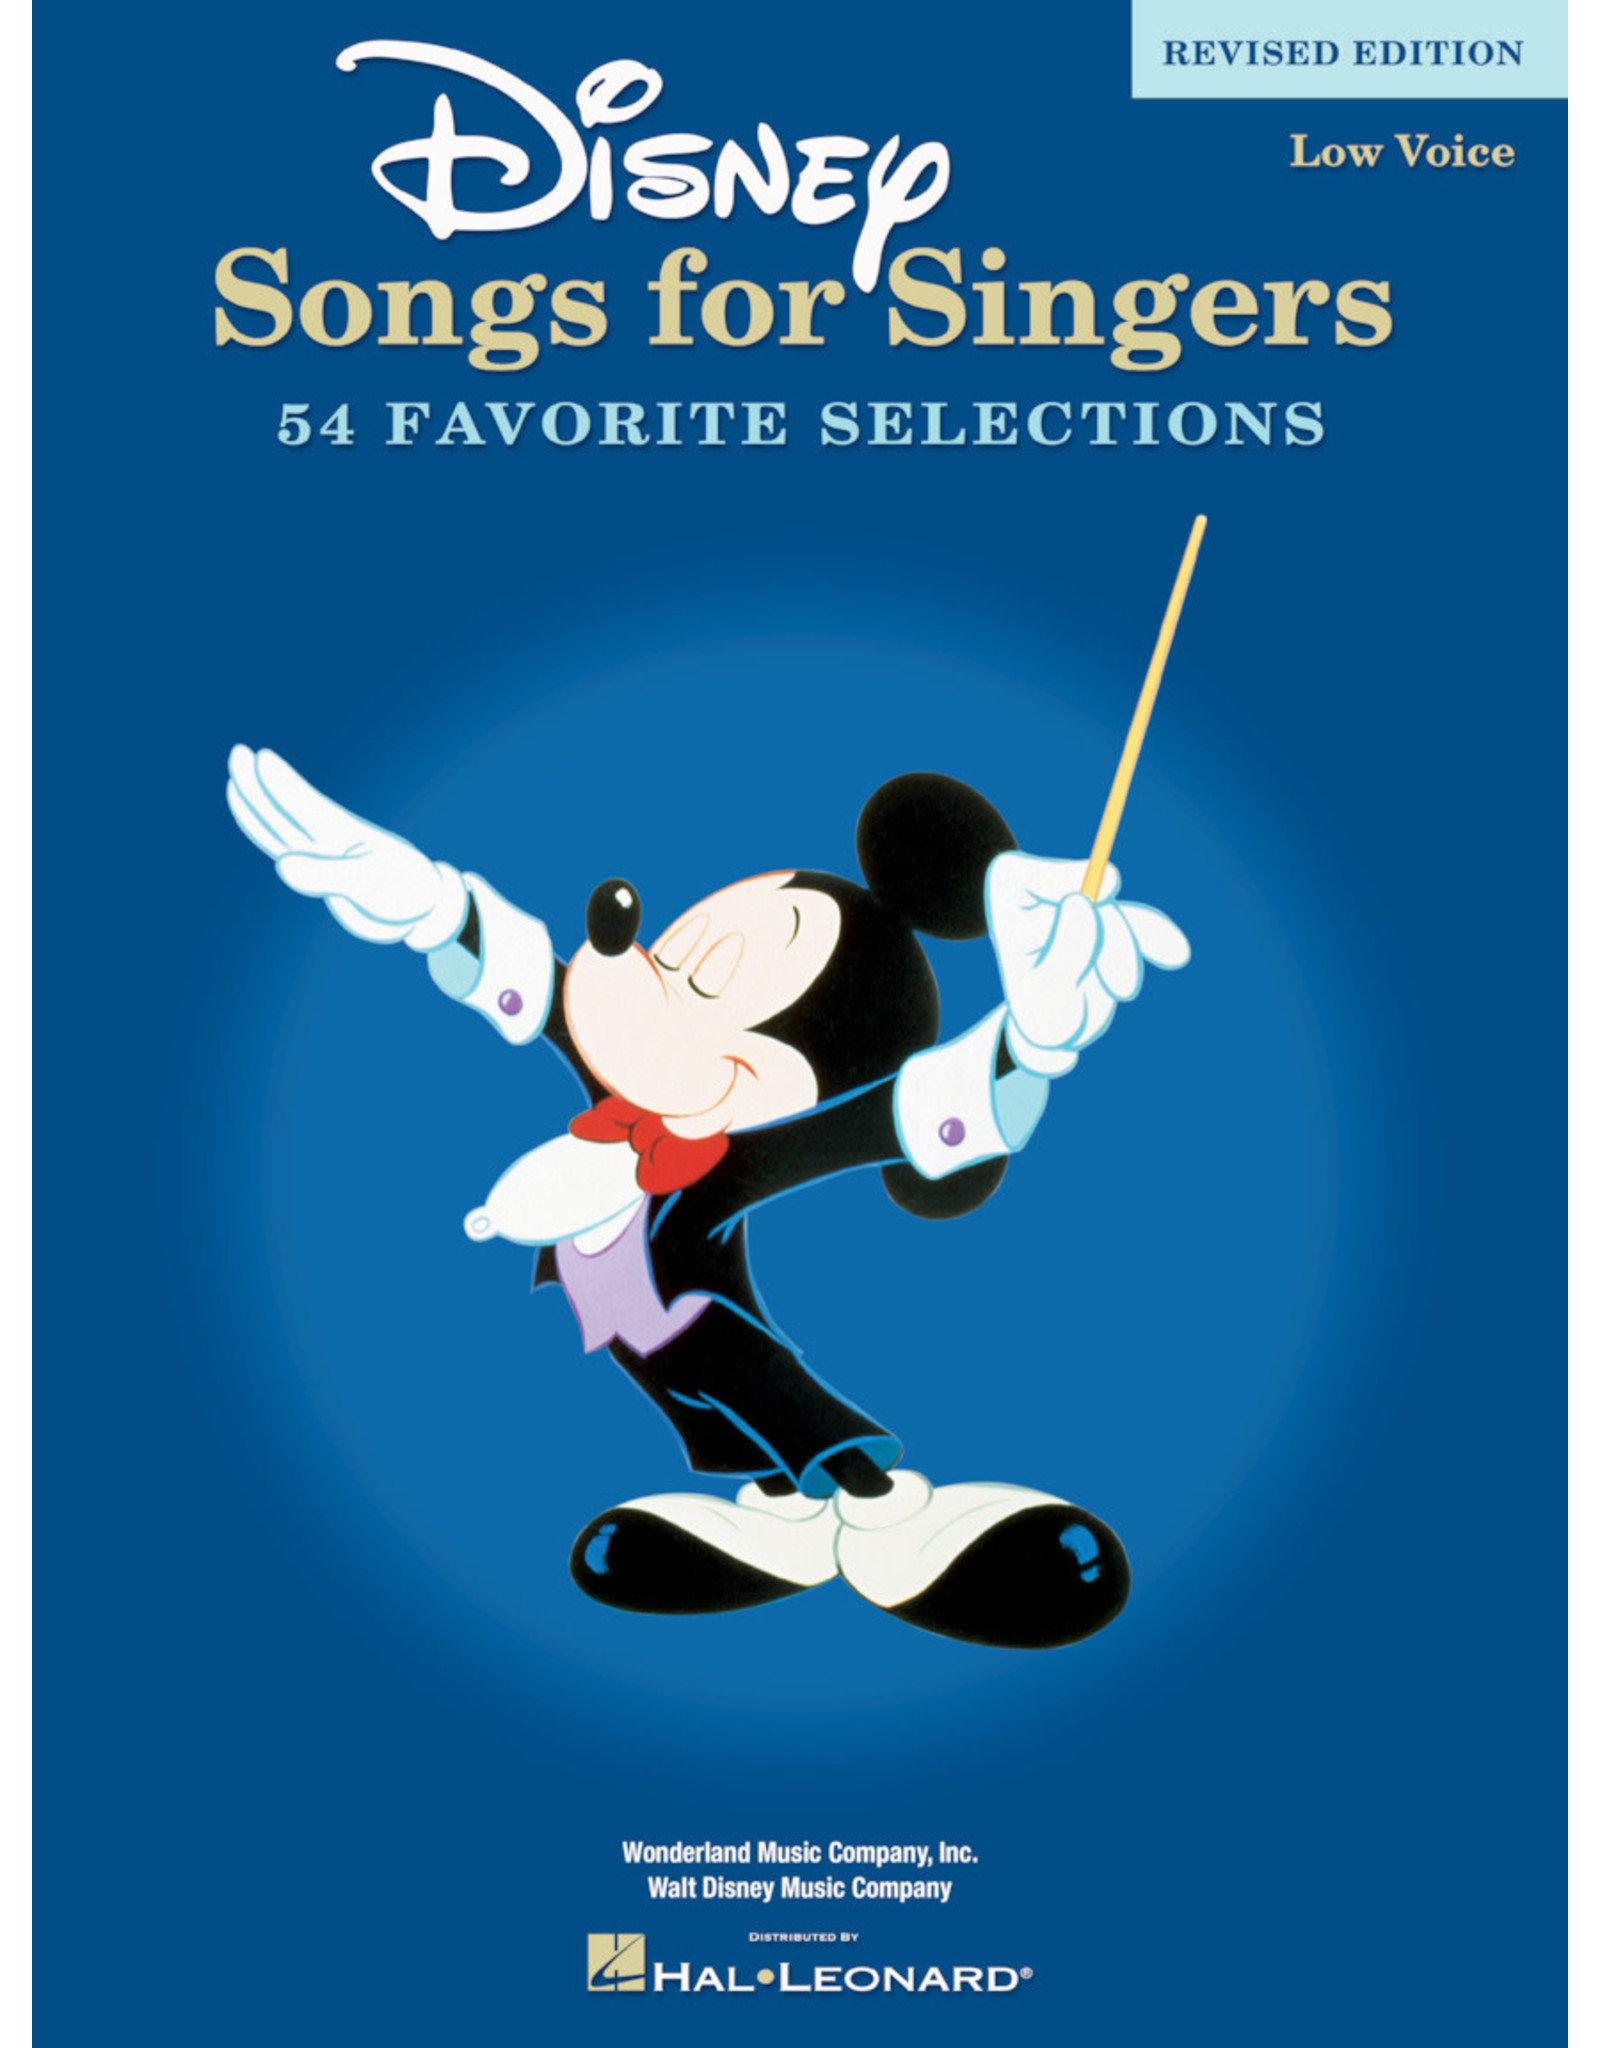 Hal Leonard Disney Songs for Singers - 45 Classics for Low Voice